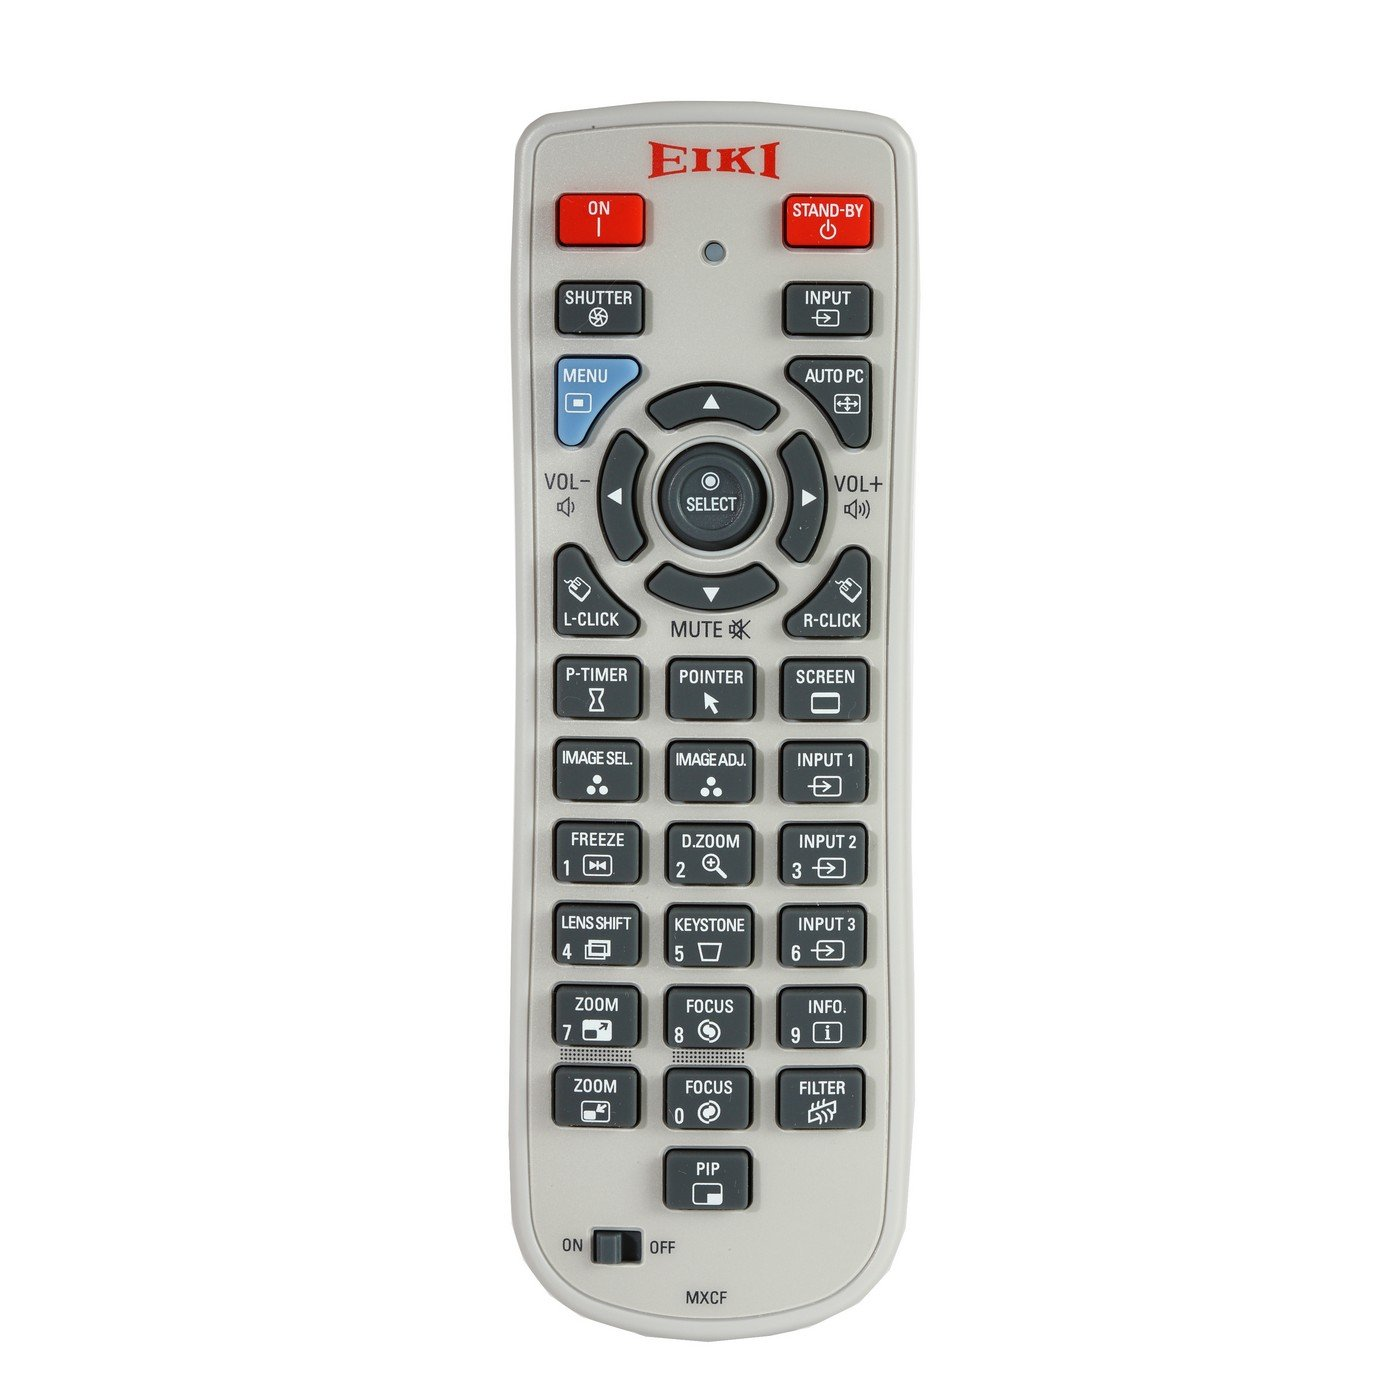 Eiki 645 103 8463 | Infrared Wired Projector Remote for LC-WUL100A/L LC-WUL100/L LC-WXL200A/L LC-XL100A/L LC-XL200A/L by Eiki